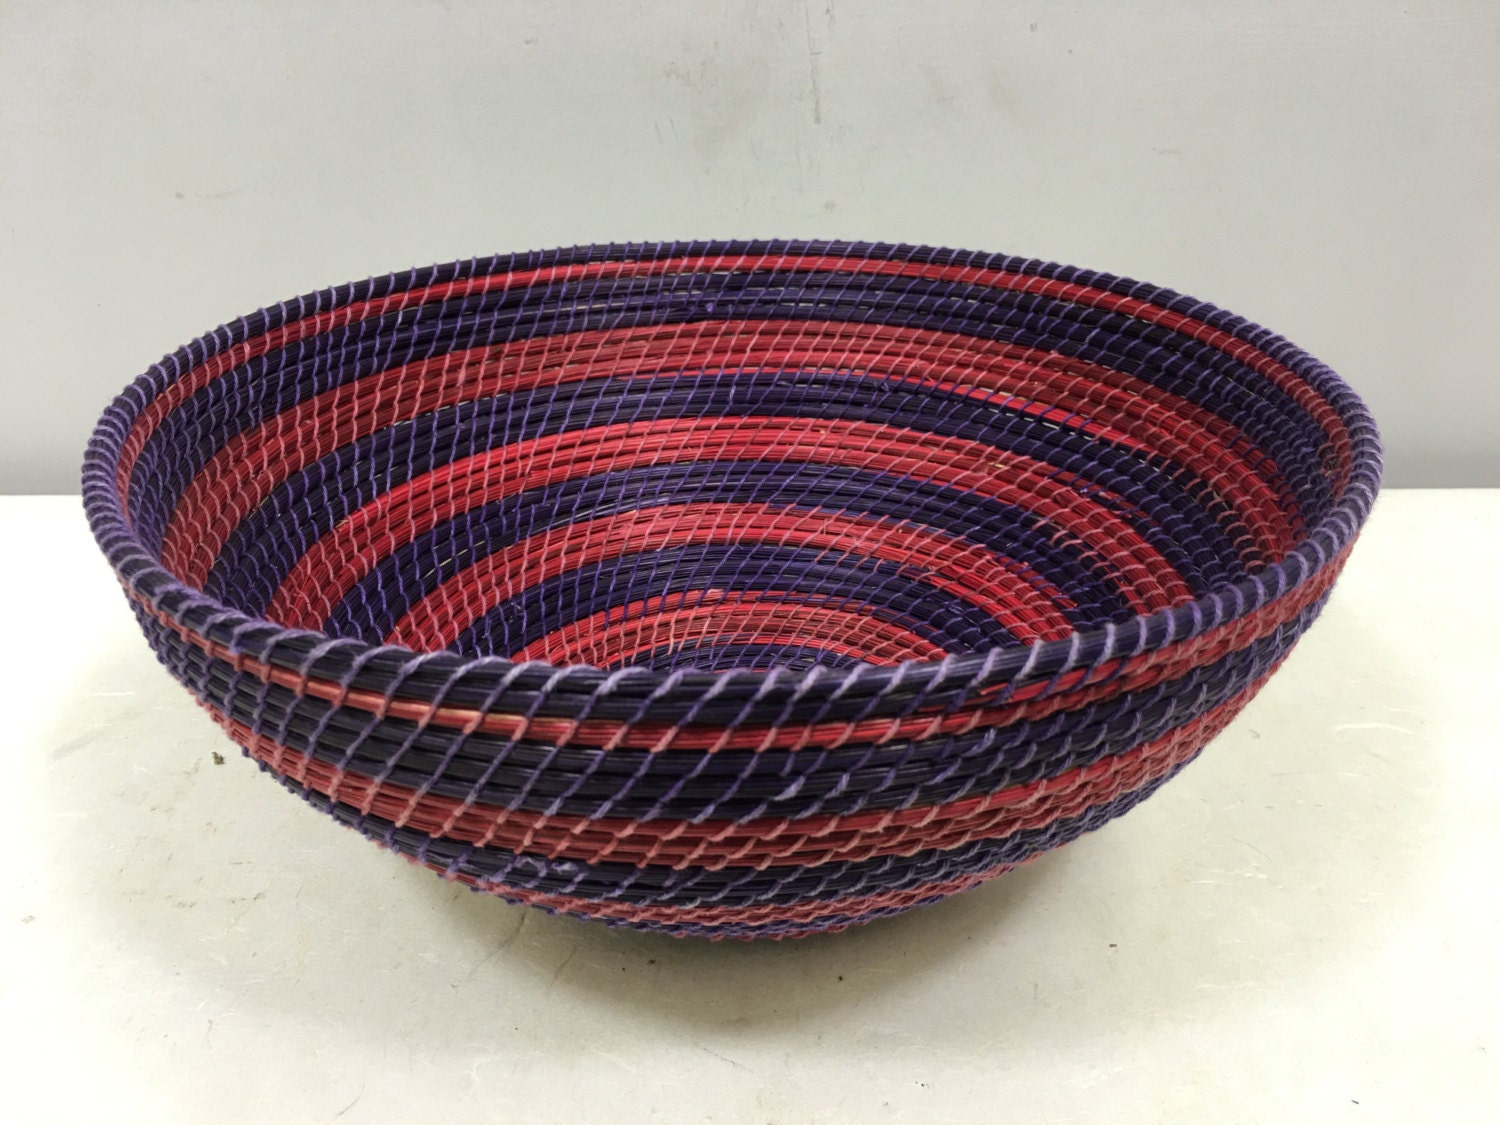 Handmade Baskets From Africa : Basket african lesotho purple red woven south africa handmade